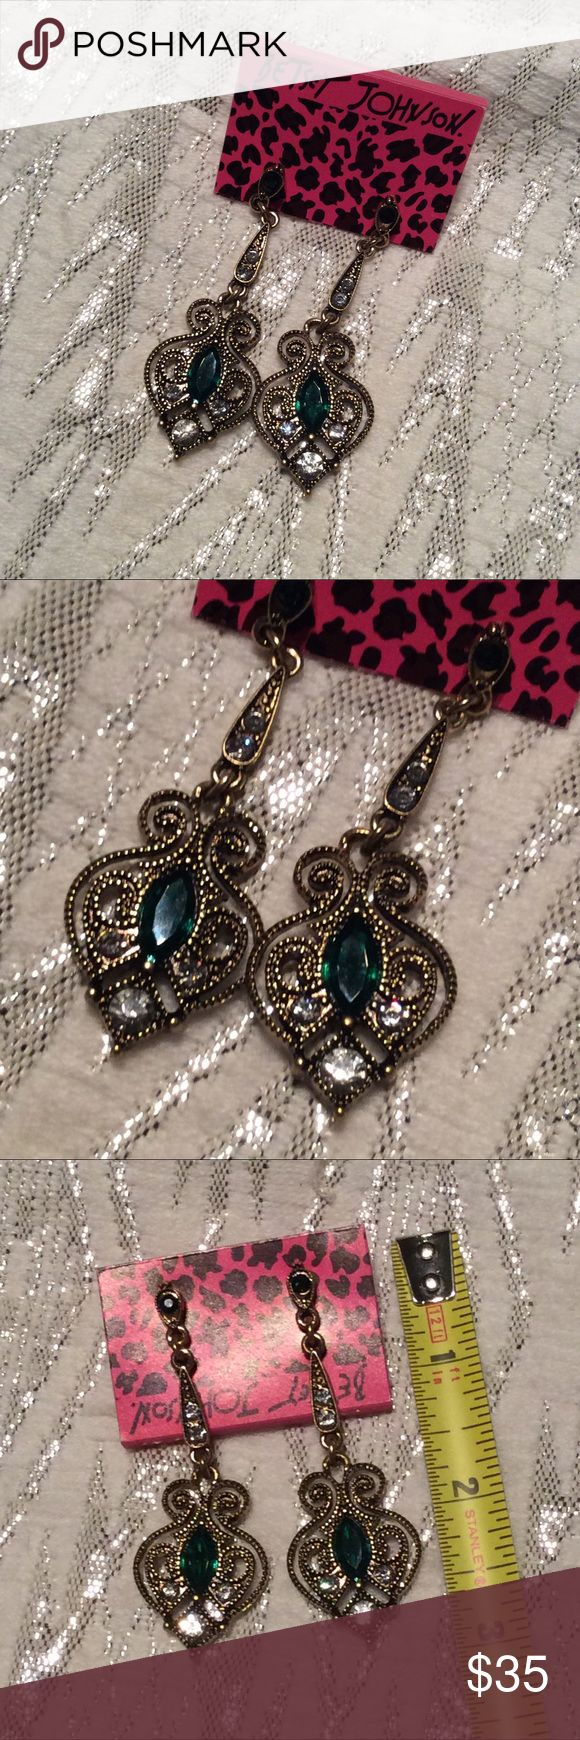 New Betsey Johnson Gold Dangle Earrings Boutique